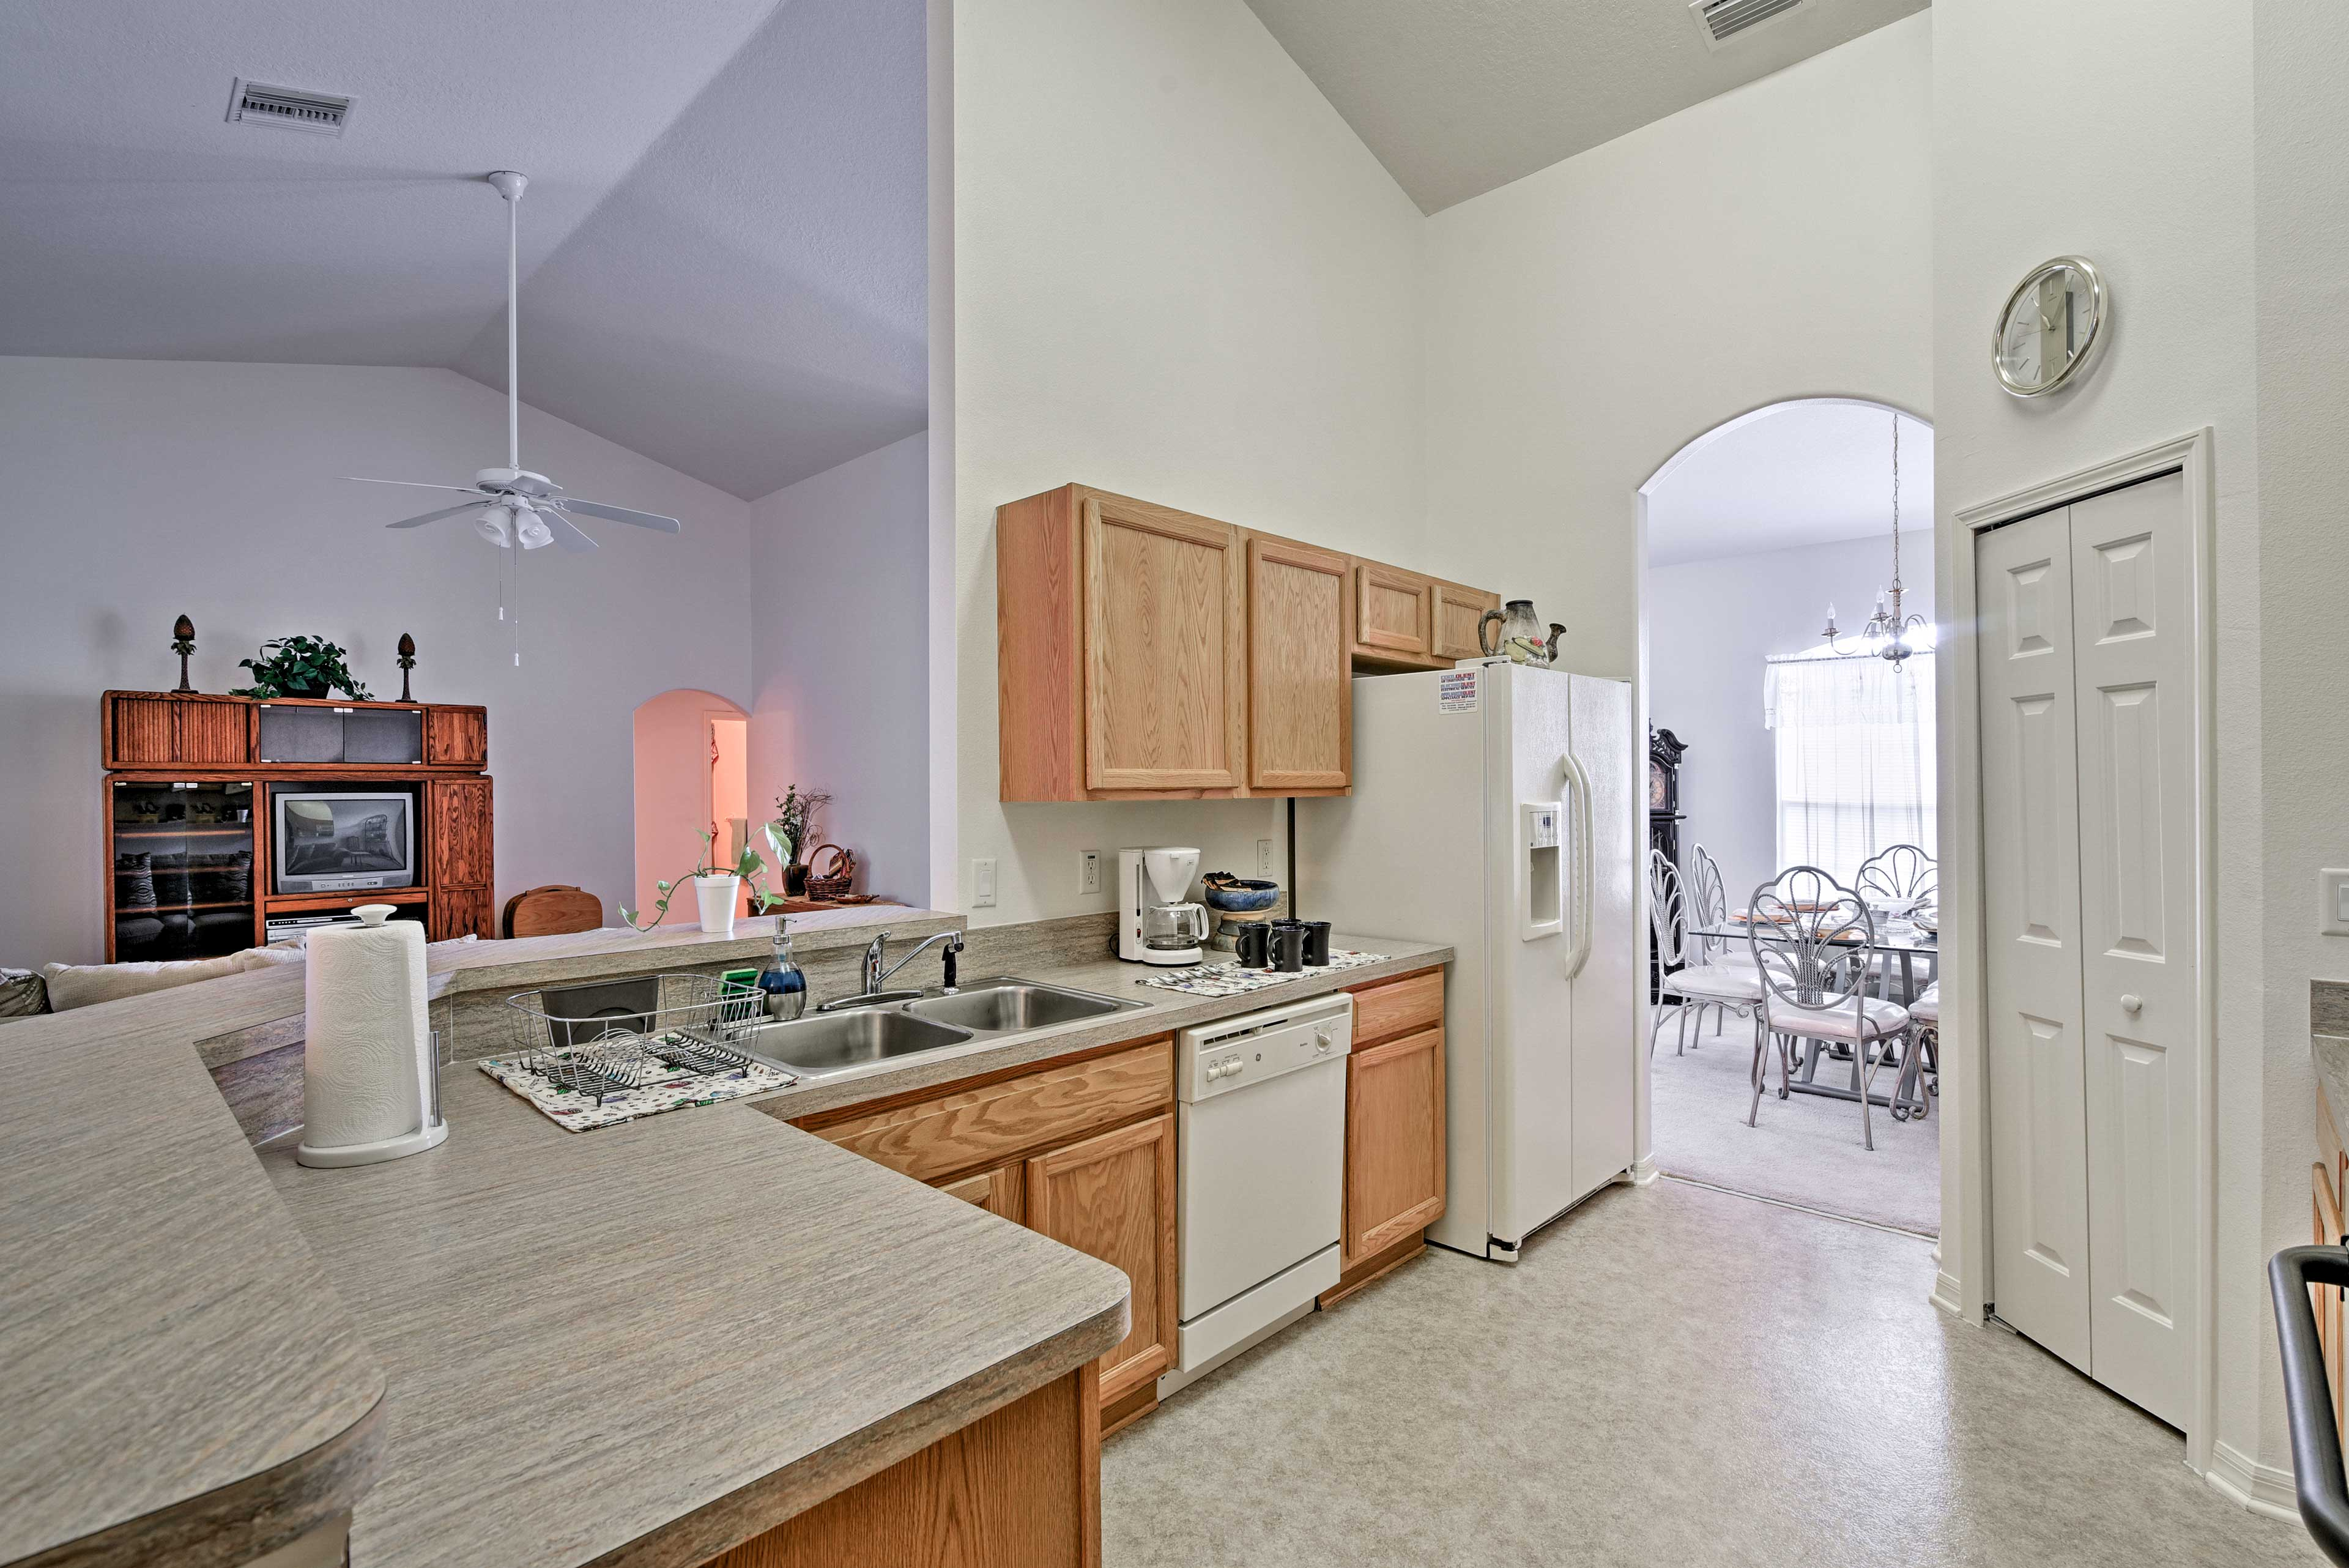 Designated chefs will be able to cook with ease in the fully-equipped kitchen.